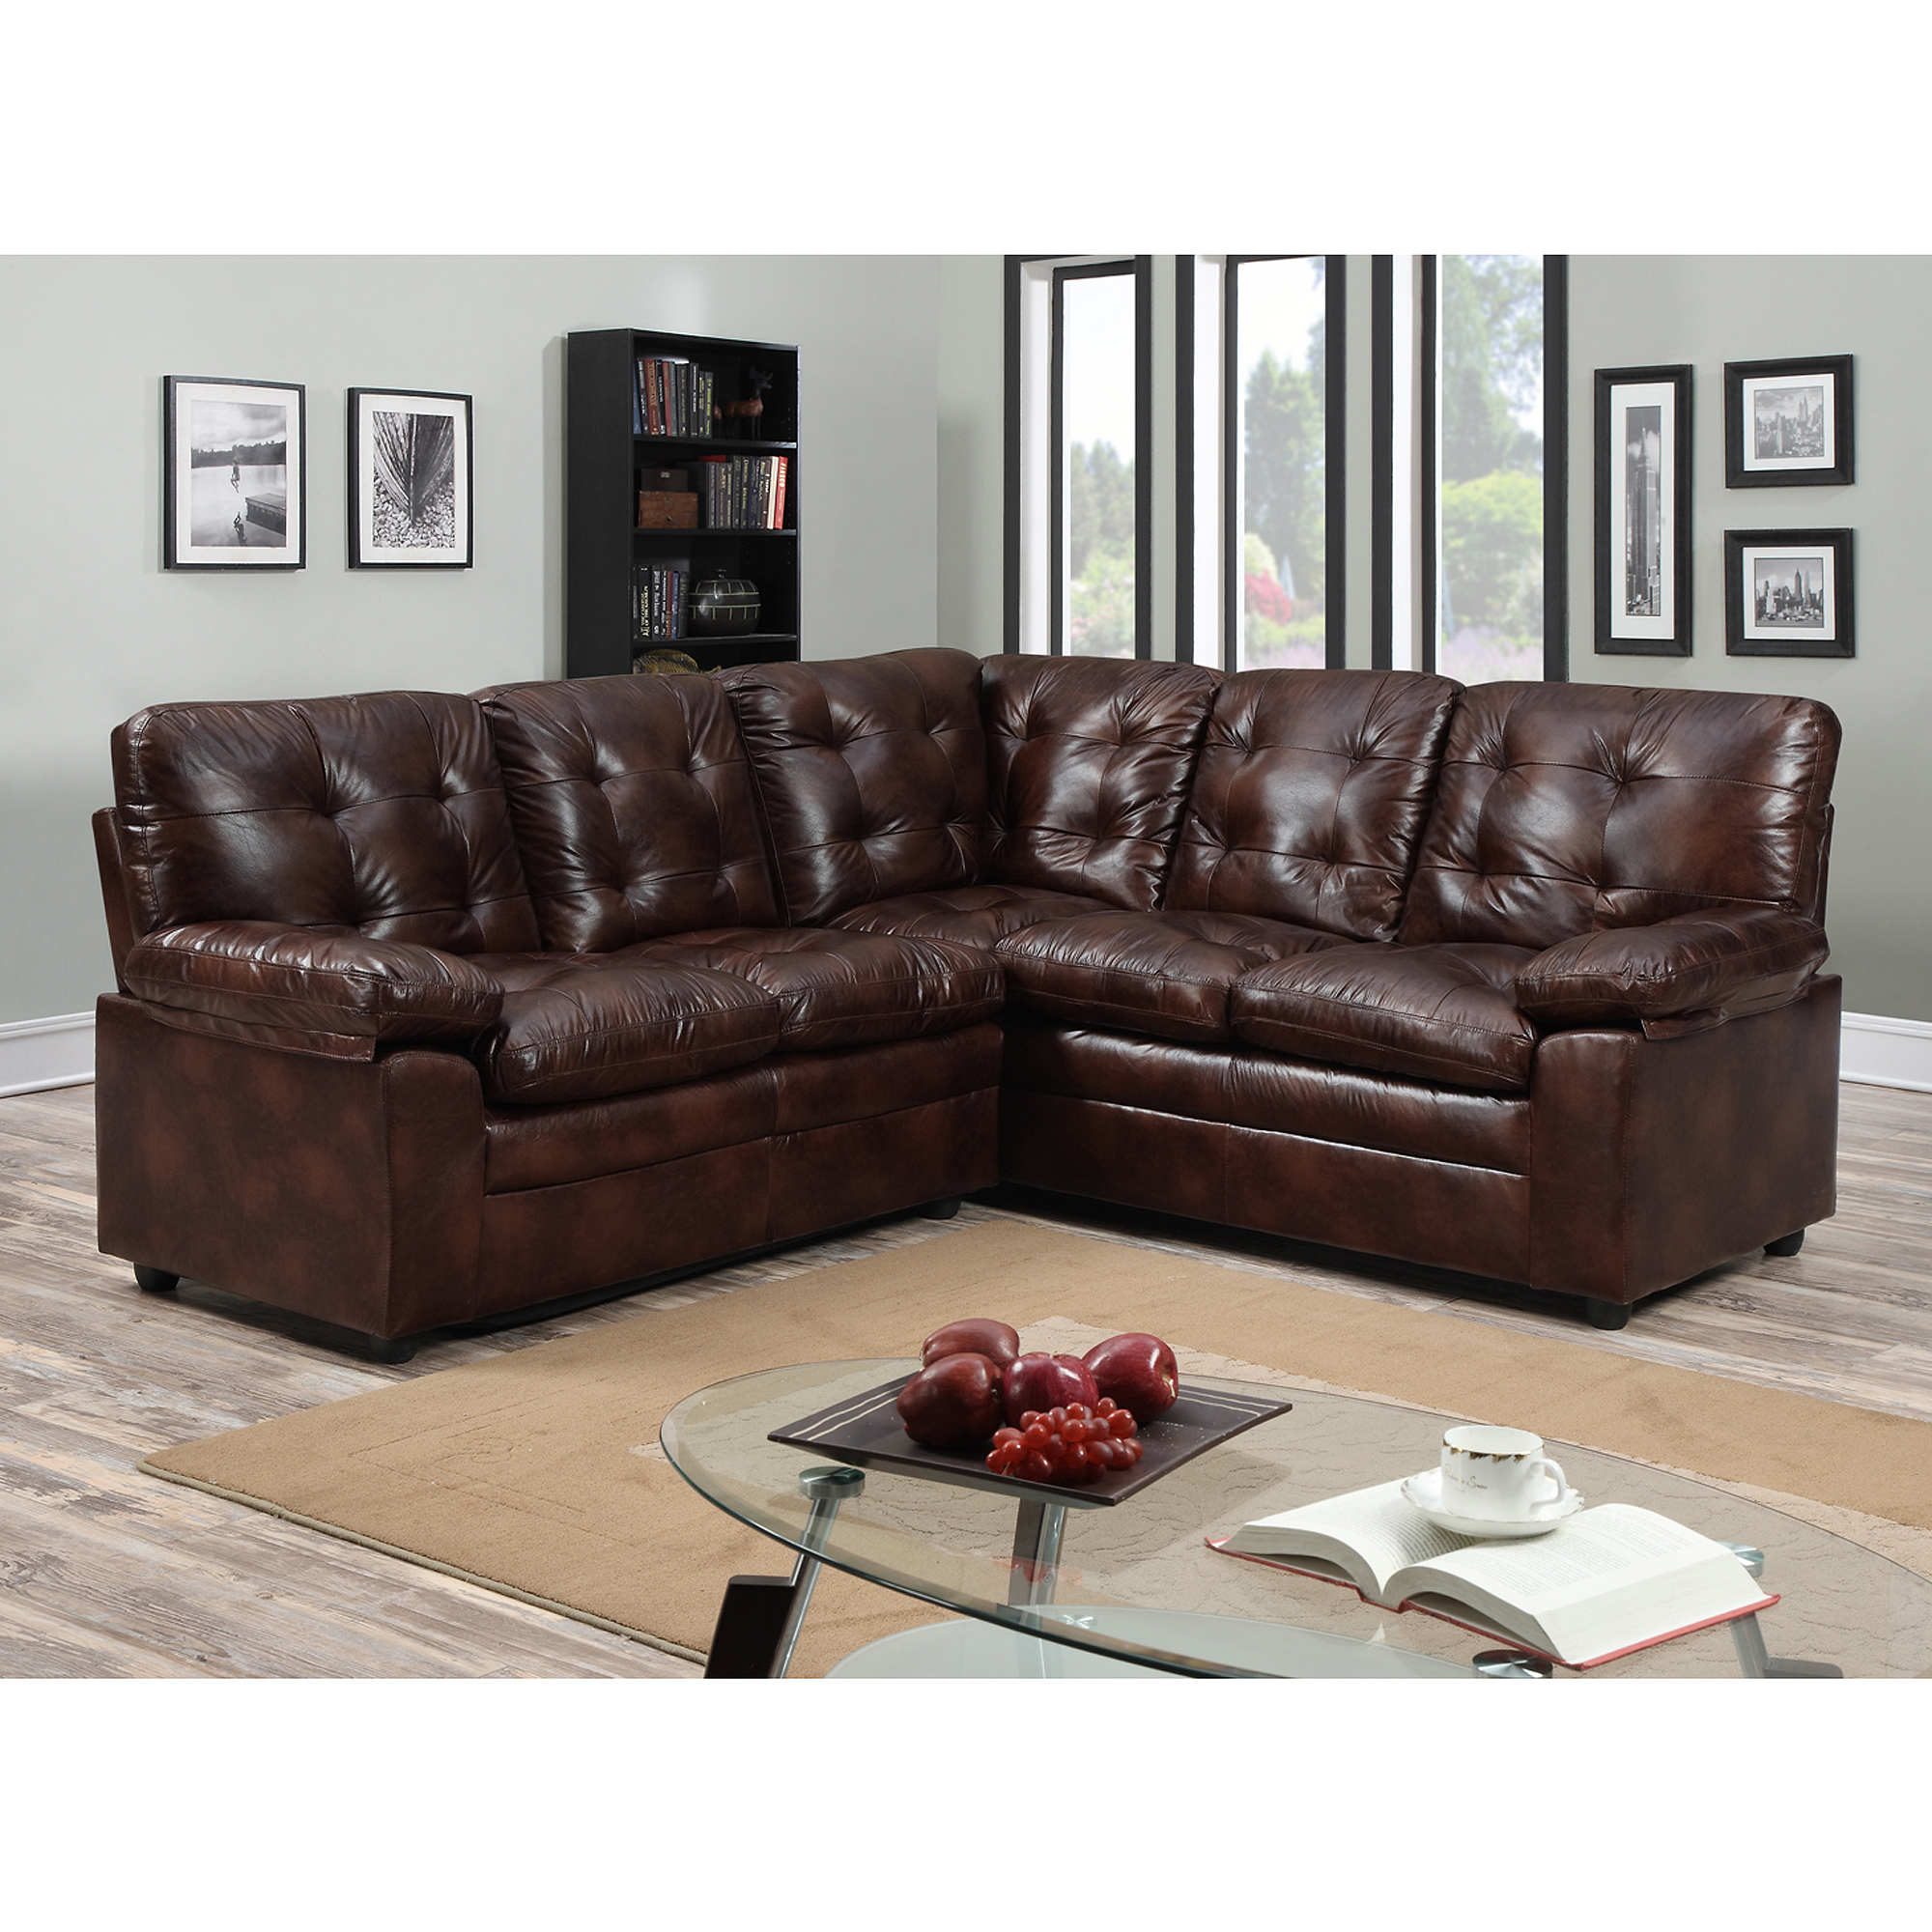 DHI Buchannan Faux Leather Corner Sectional Sofa Chestnut Box 1 of